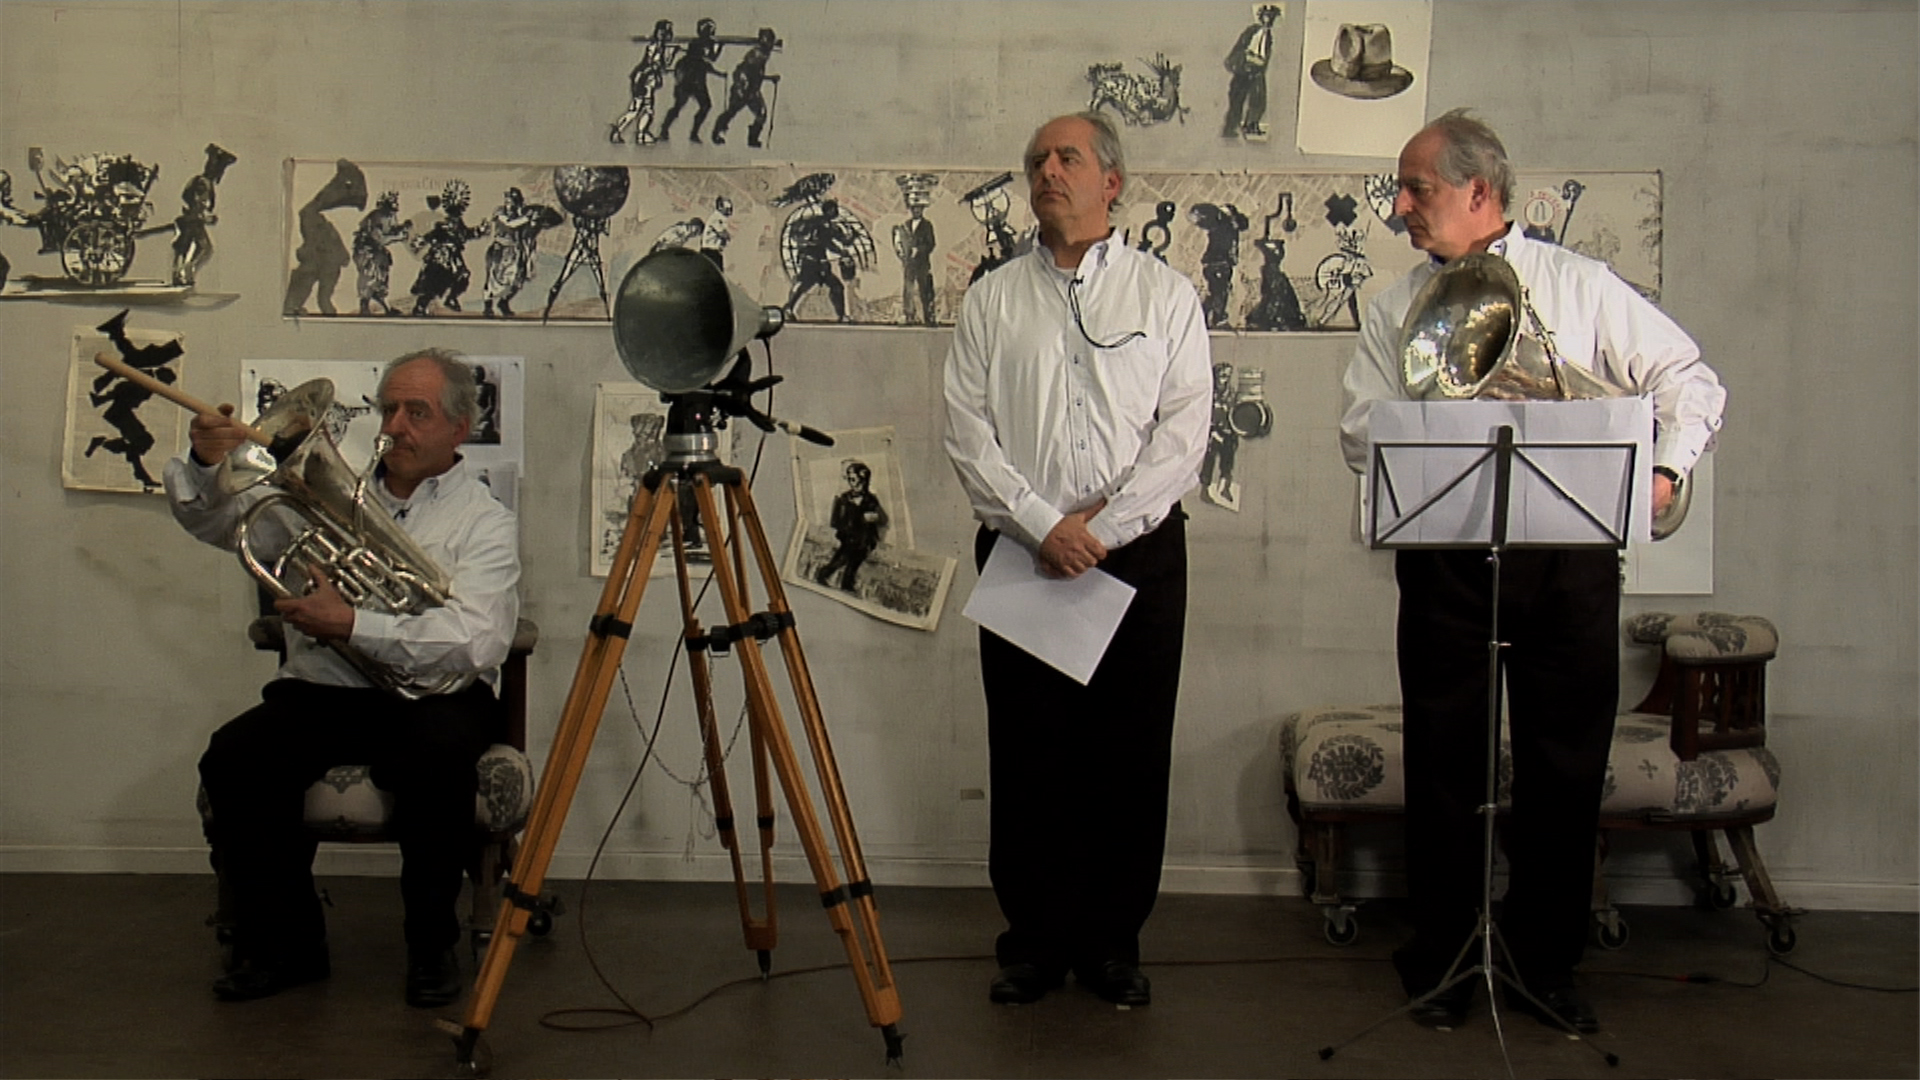 William Kentridge - Isis Tragedie (for Concert) - 2010